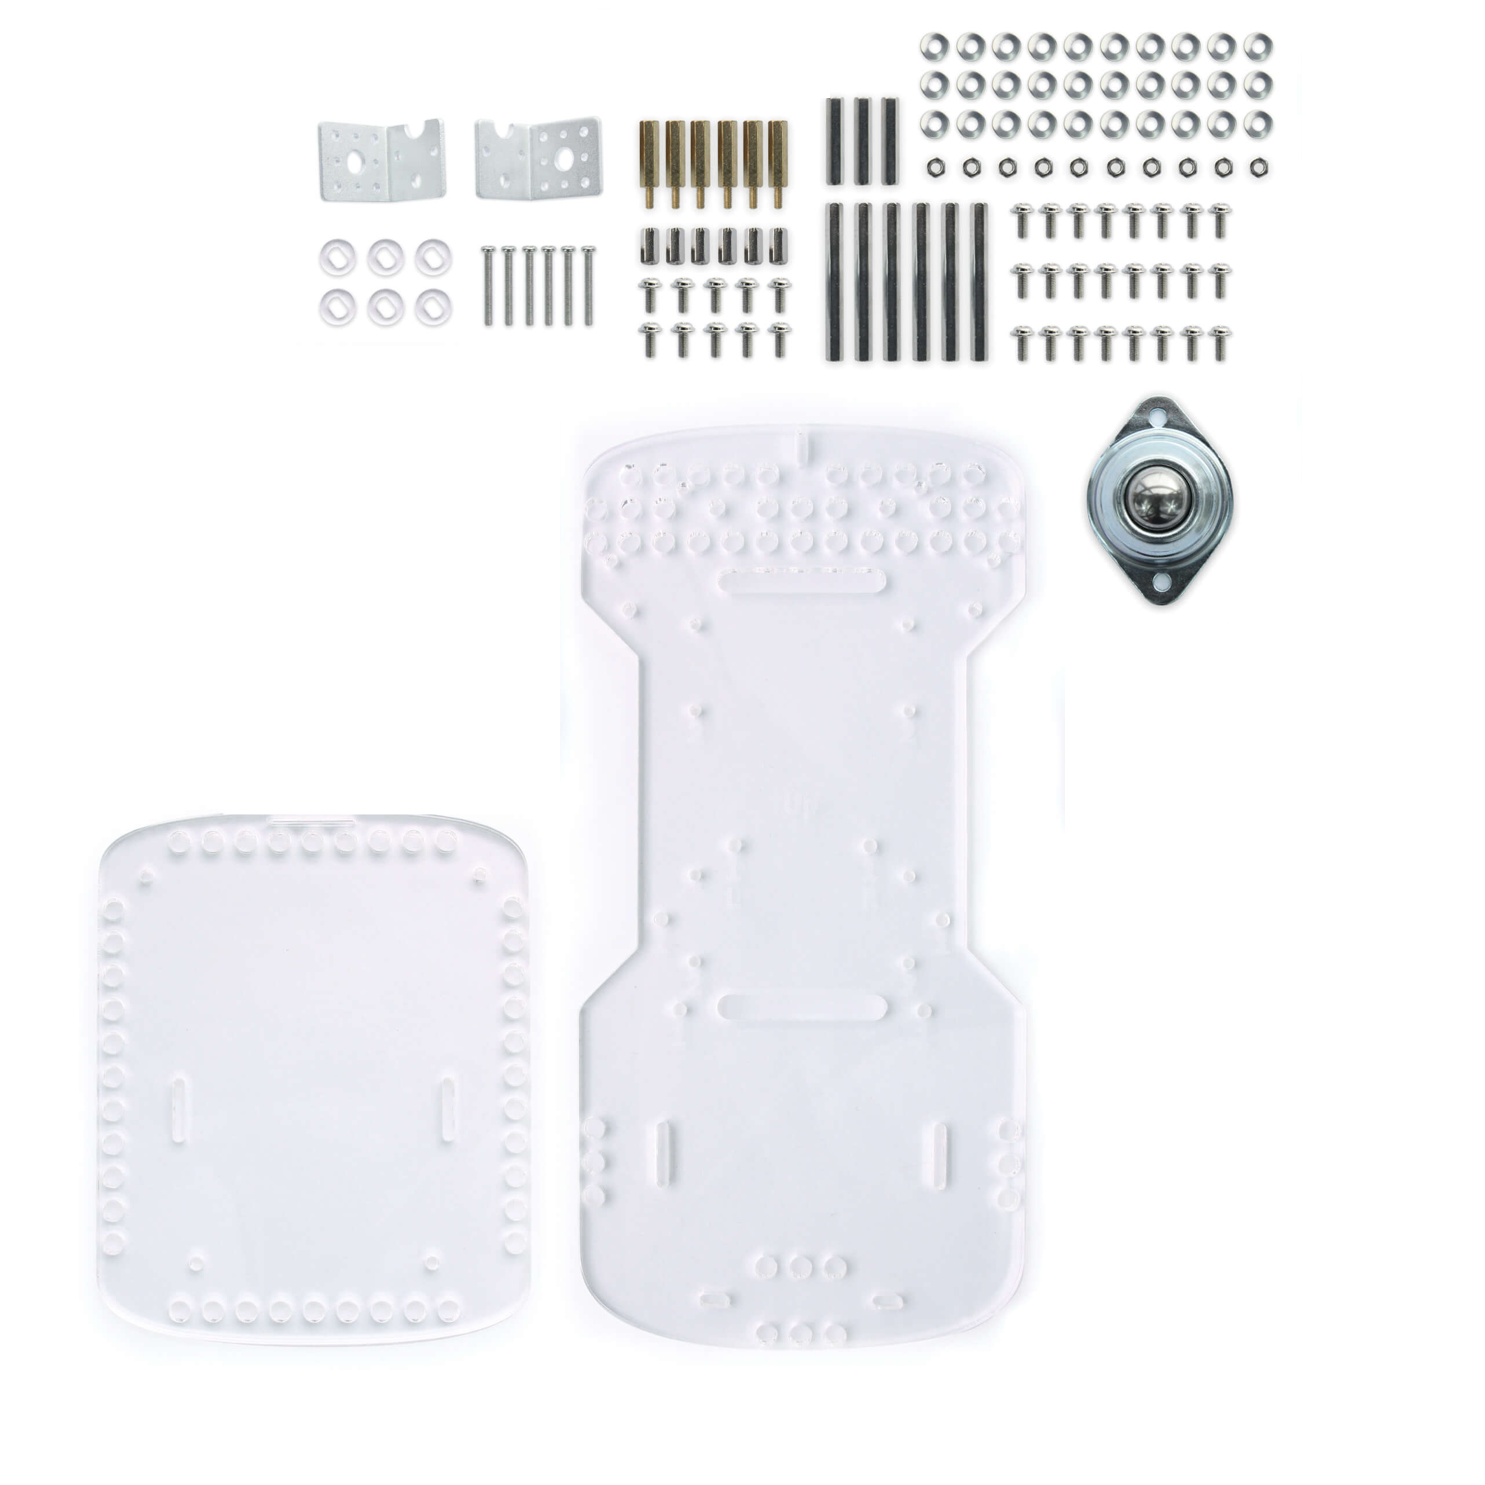 GoPiGo3 Clear Acrylic Body Replacement Parts